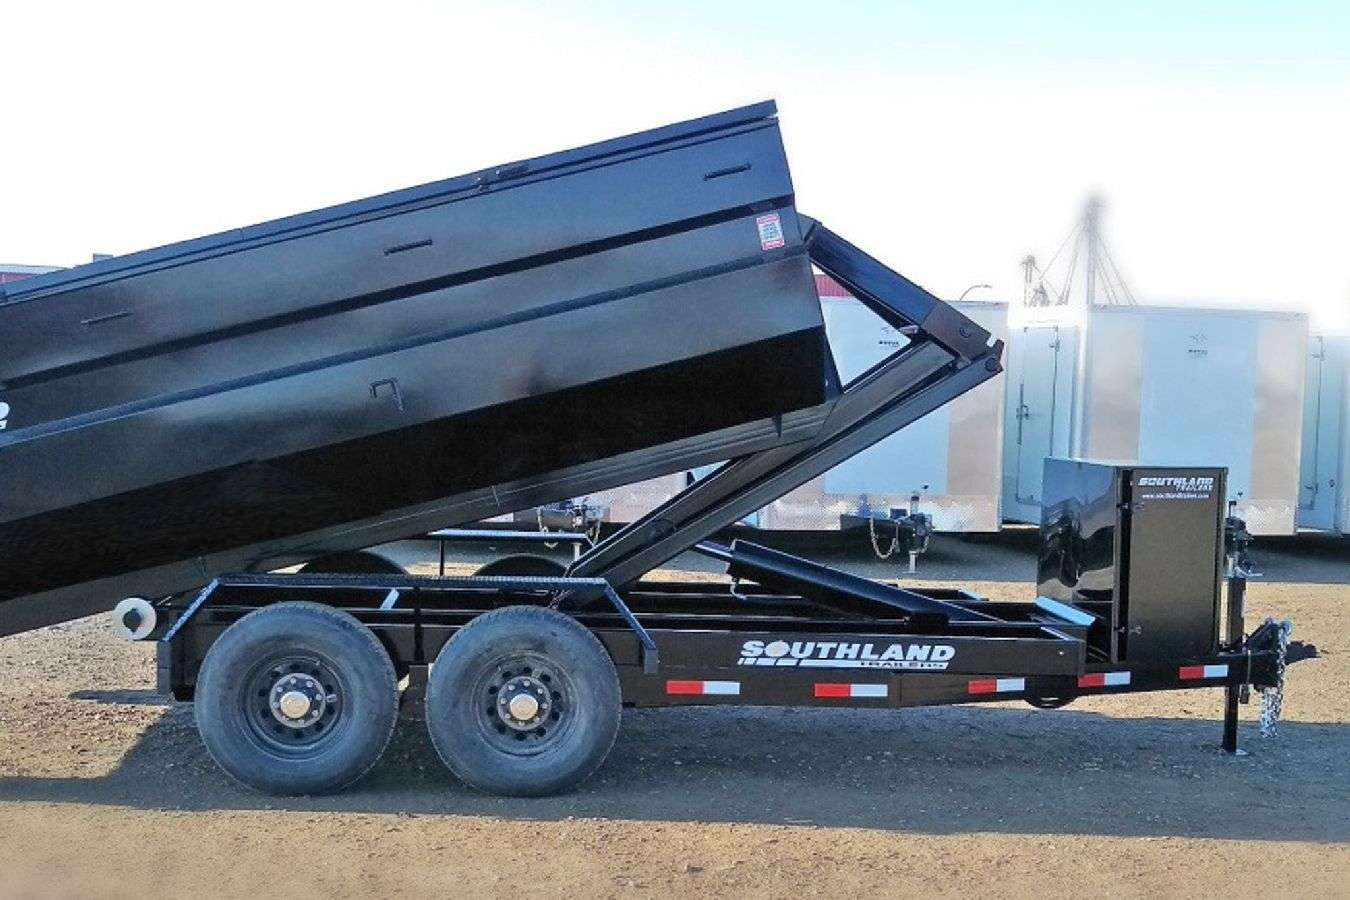 Southland Hook Lift Dump Trailer